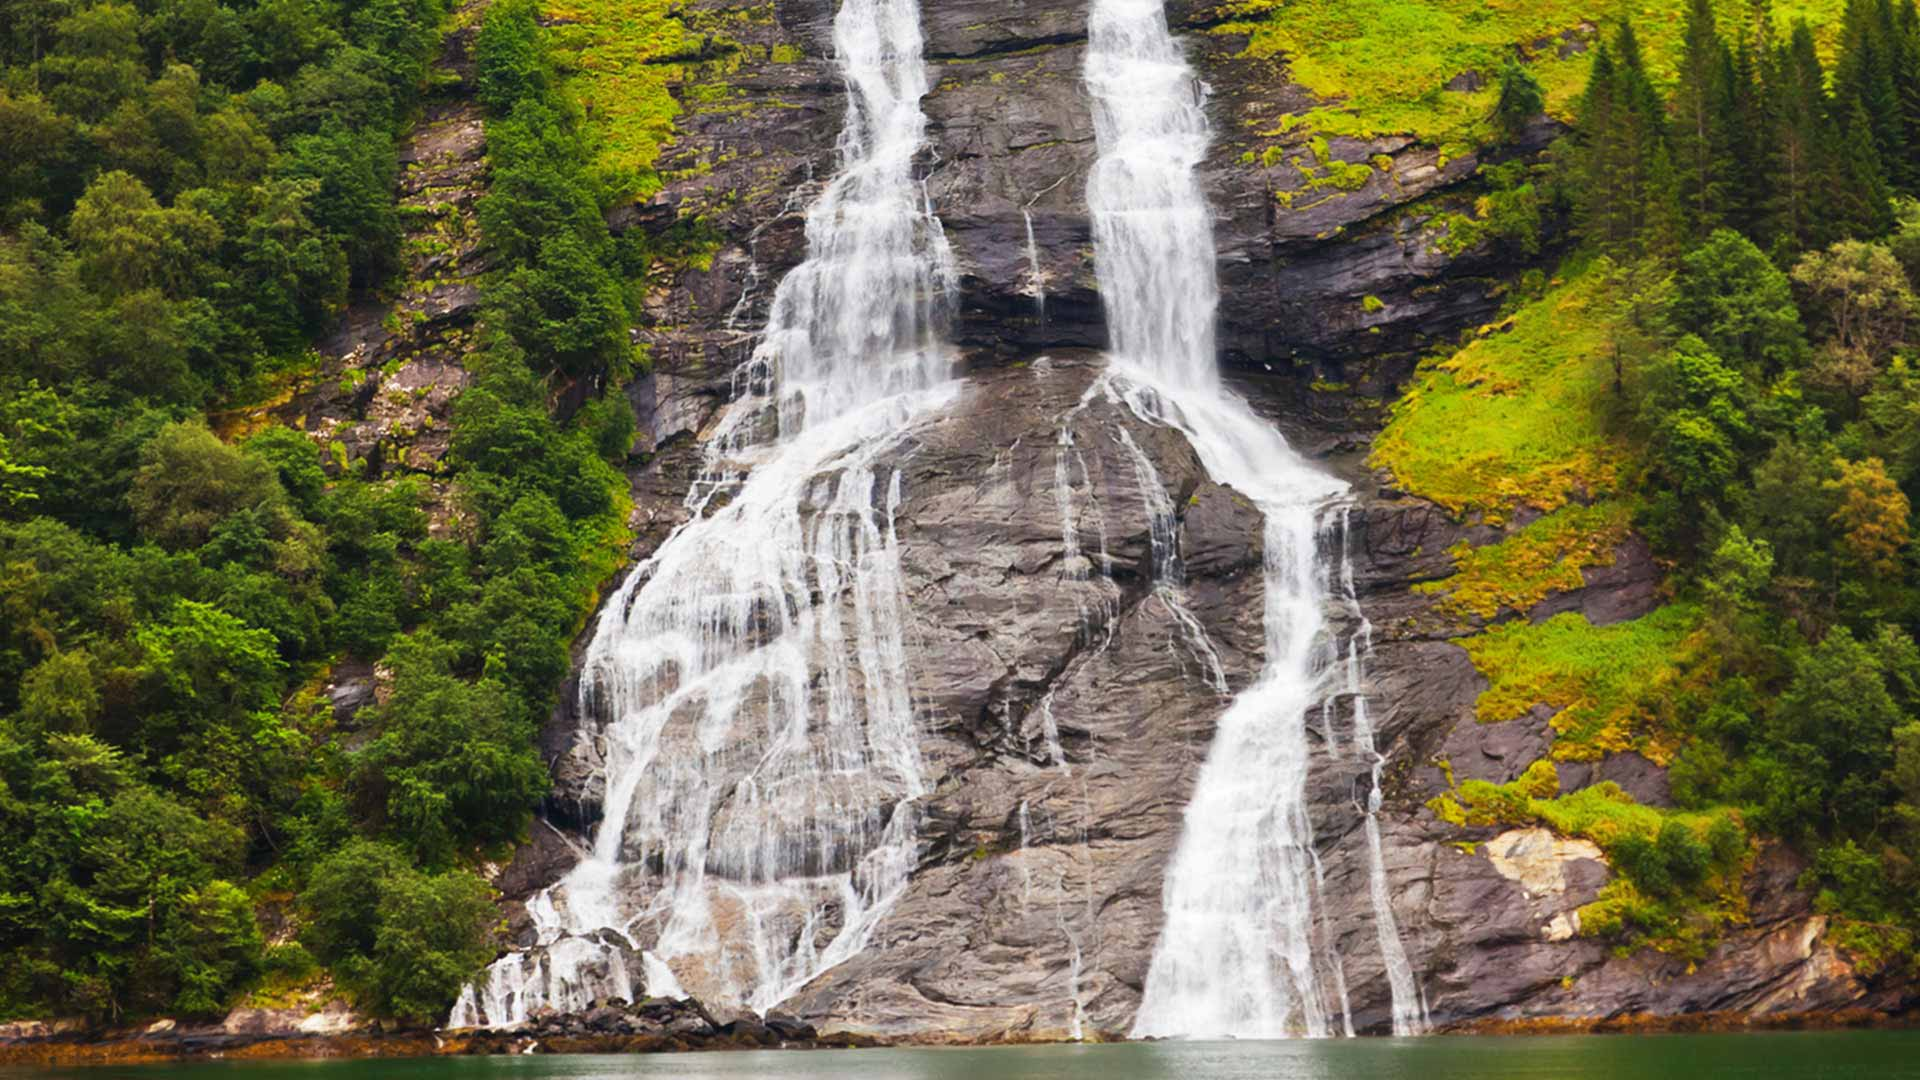 Geirangerfjord waterfall in Norway